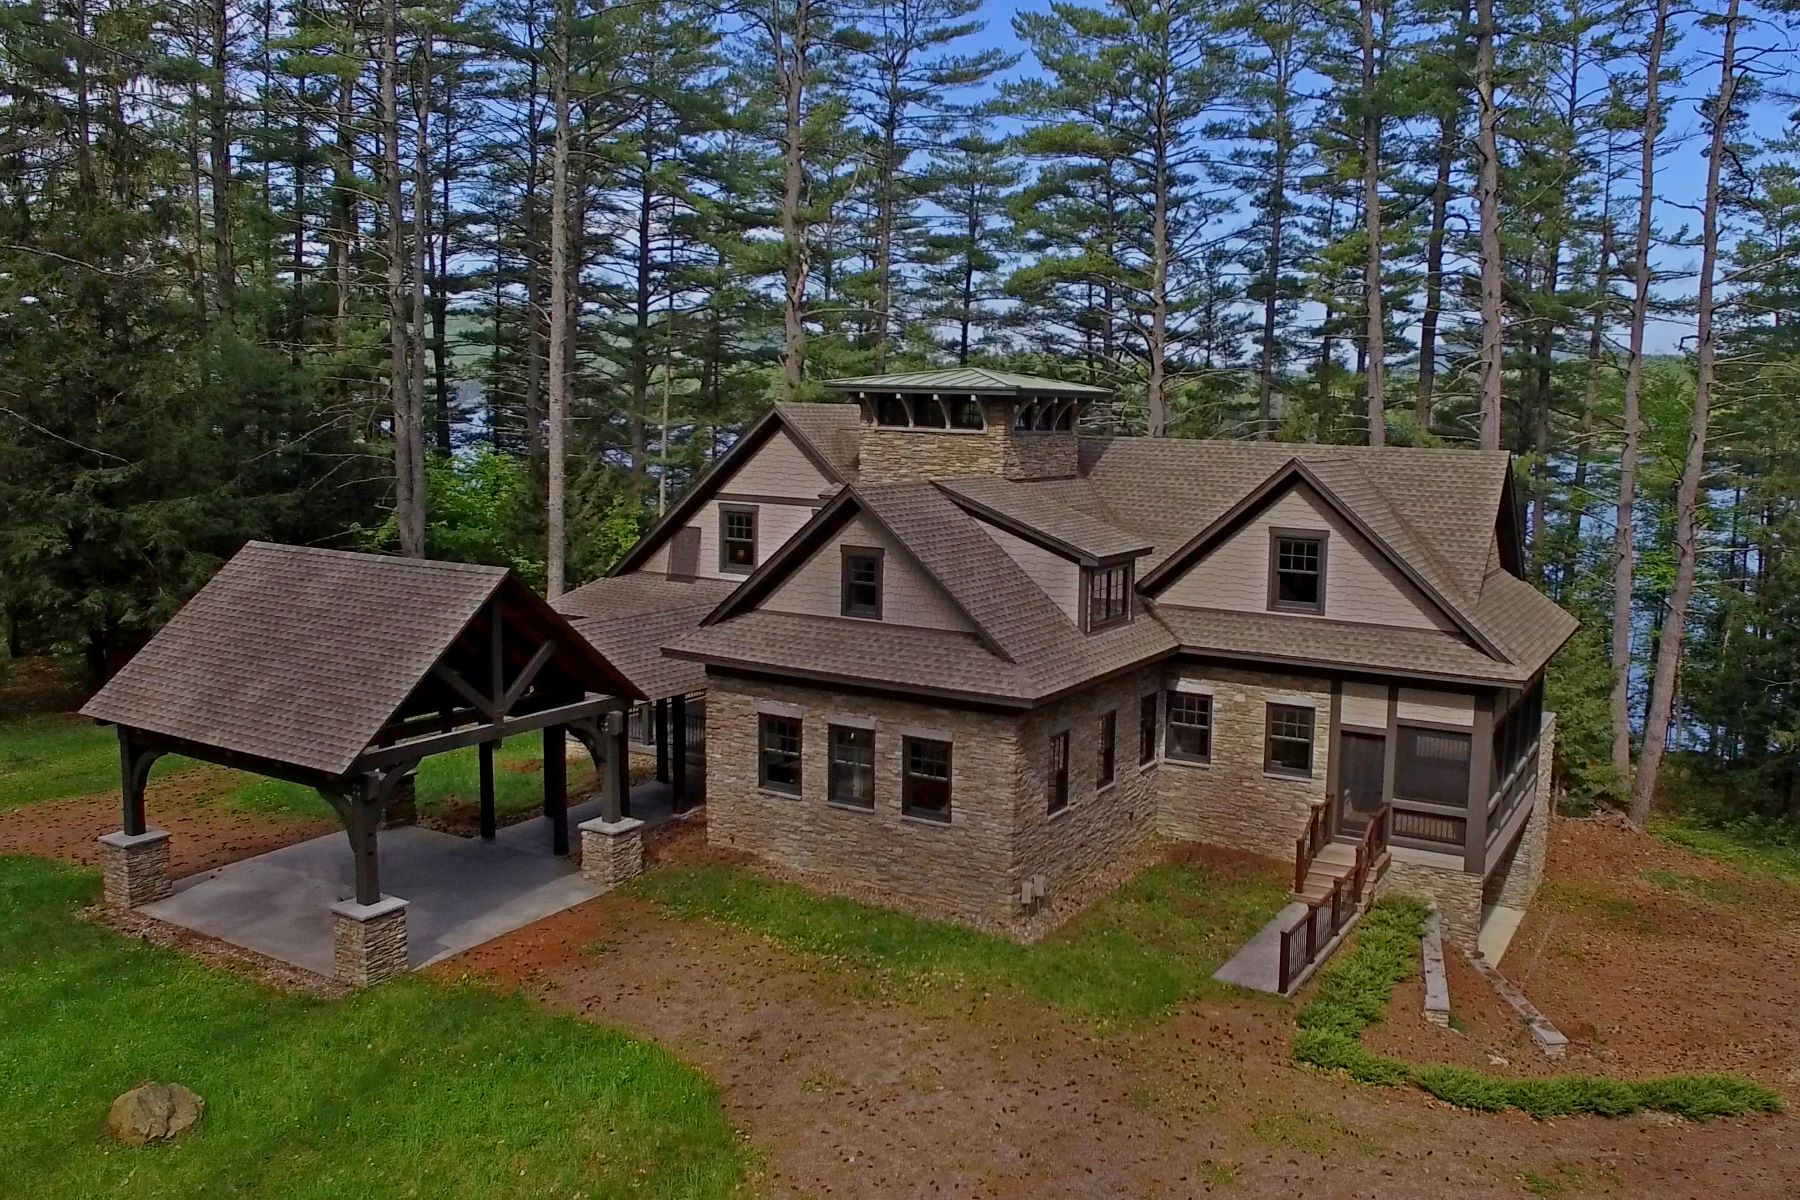 Single Family Homes for Active at Custom Adirondack Lake House on Over 2 Acres 18 Palisades East Brant Lake, New York 12815 United States